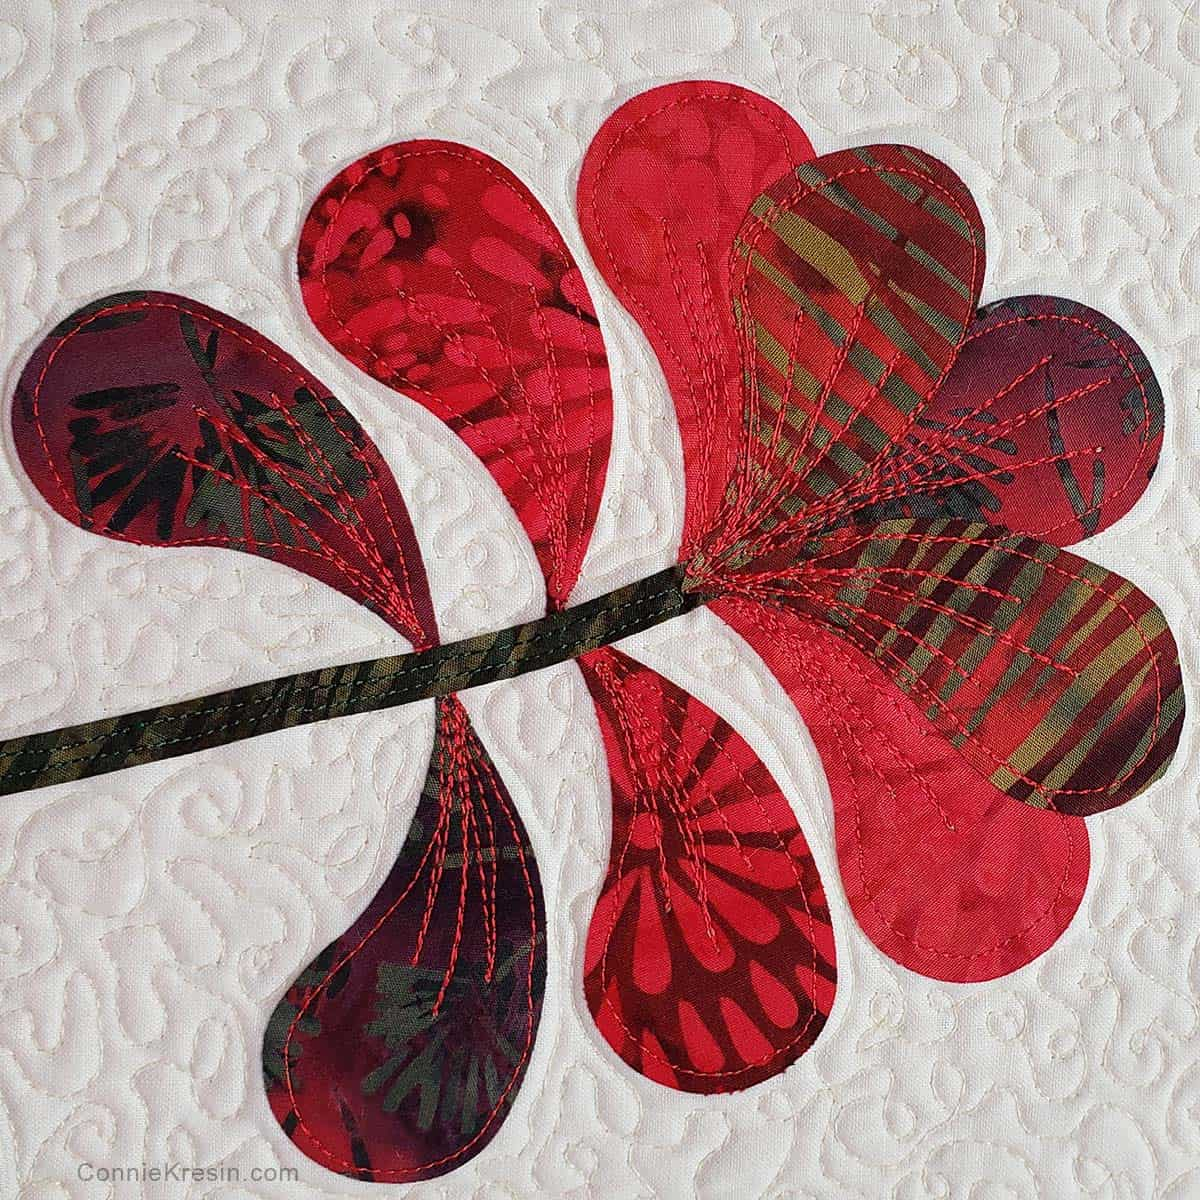 Thread painting on the fabric flowers